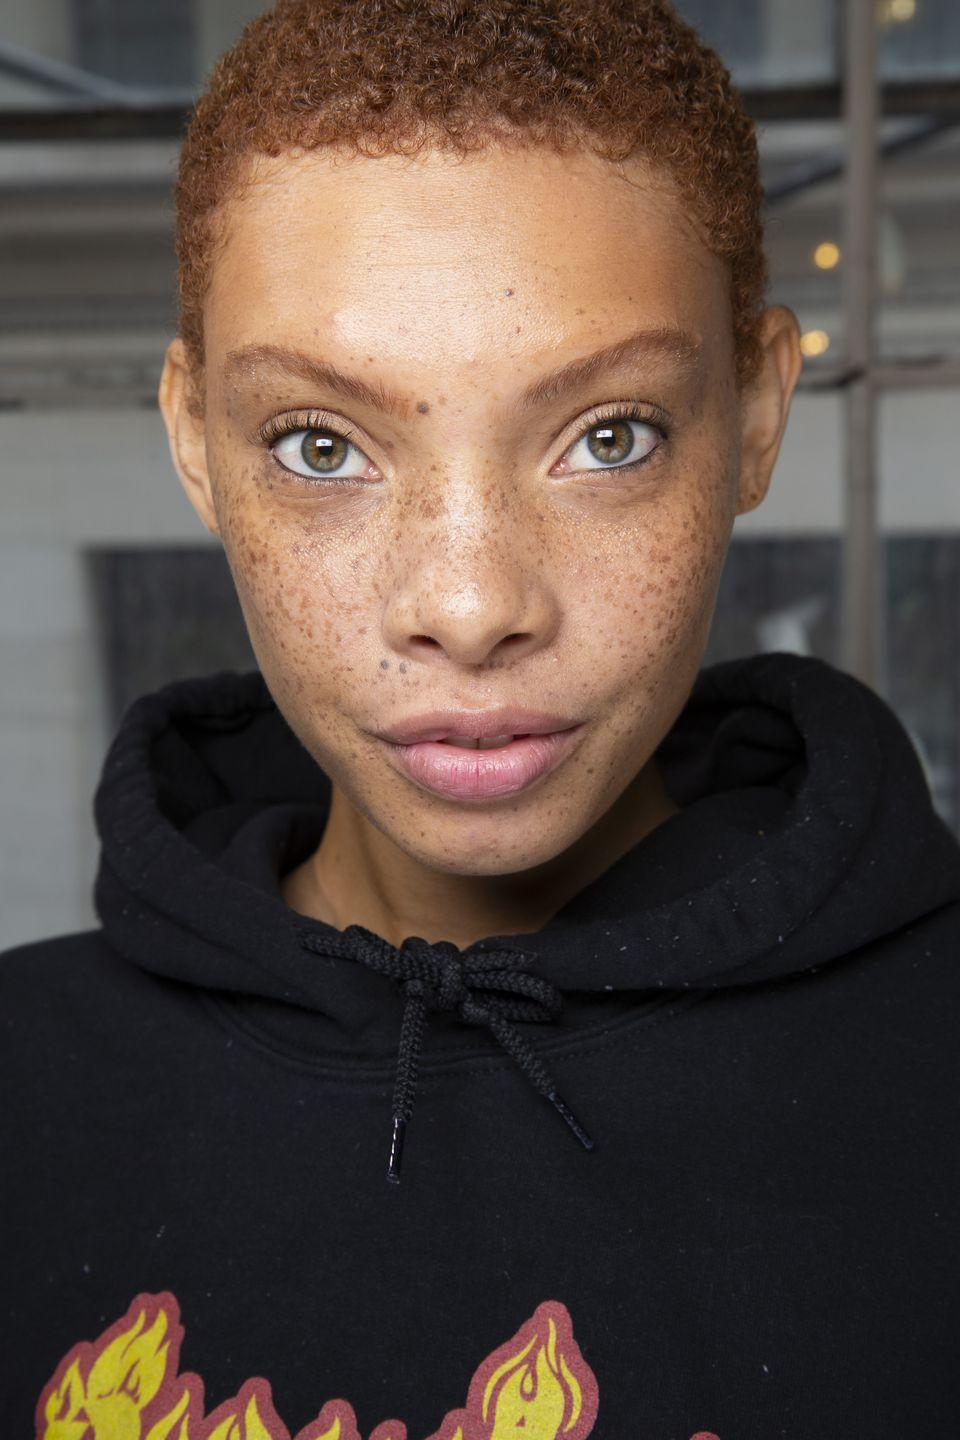 <p>Sometimes the only piece of makeup you need is a sharp black eyeliner, traced along your inner waterline. With fresh and natural skin, black eyeliner has never looked so cool.</p>